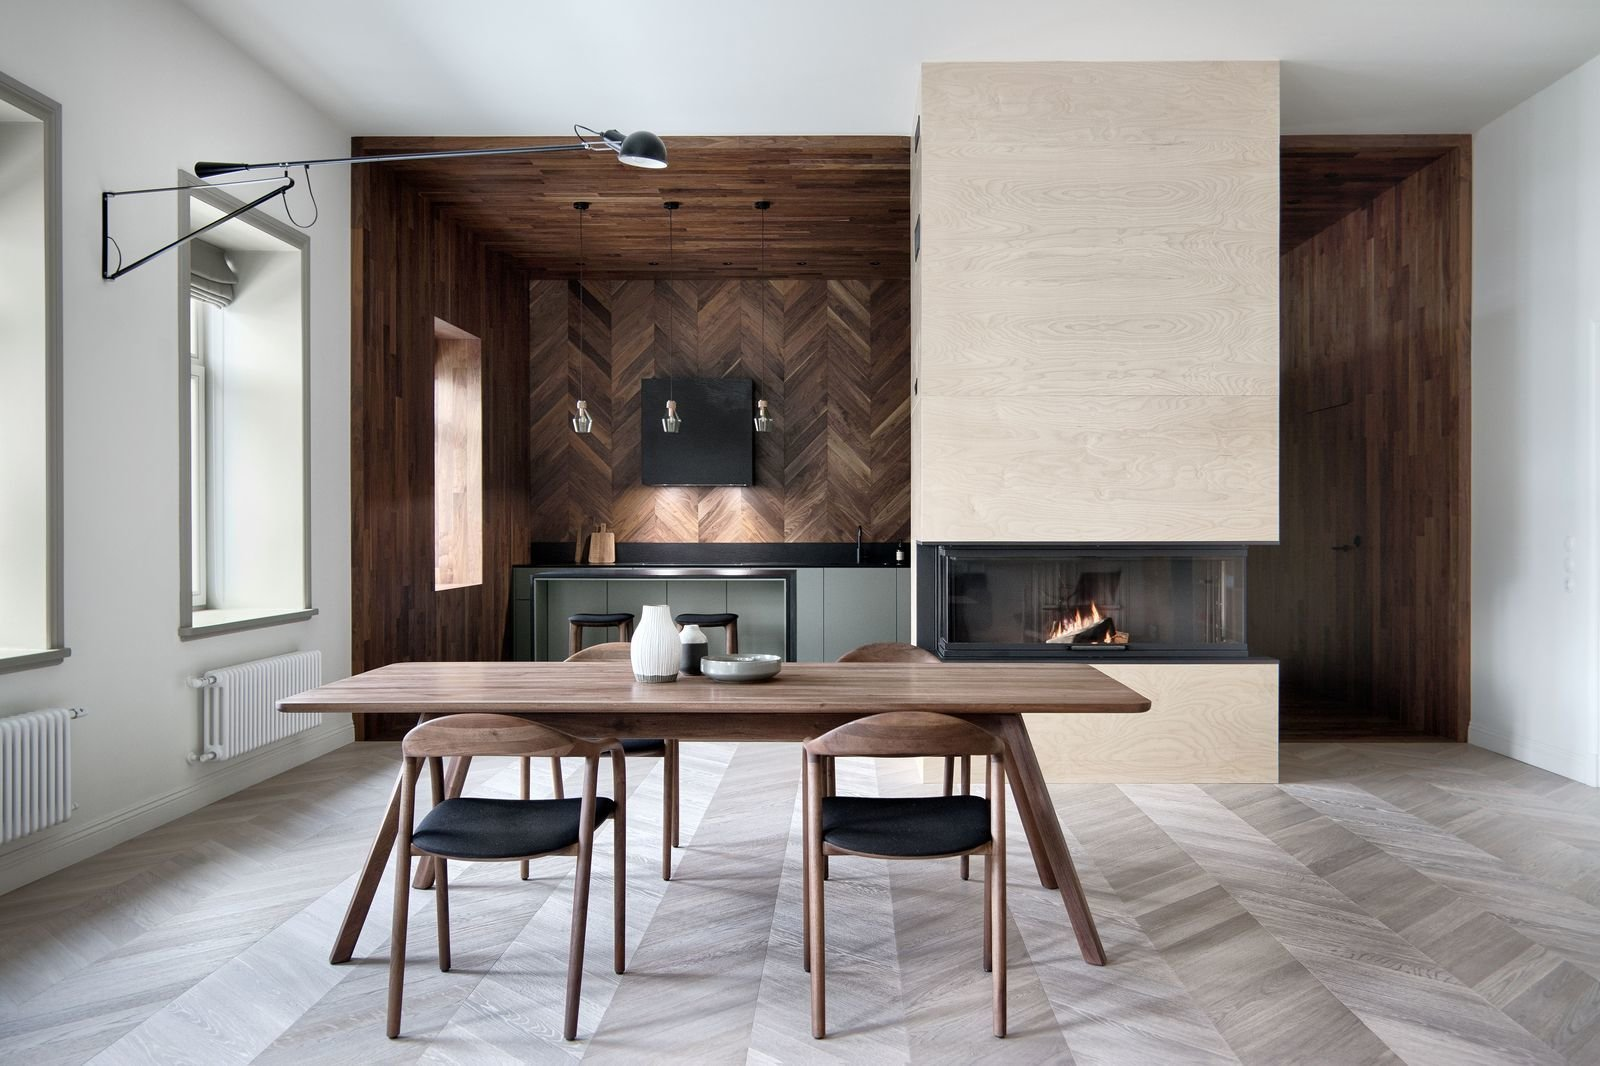 A Variety of Finishes Add Textural Intrigue to This Renovated Russian Apartment